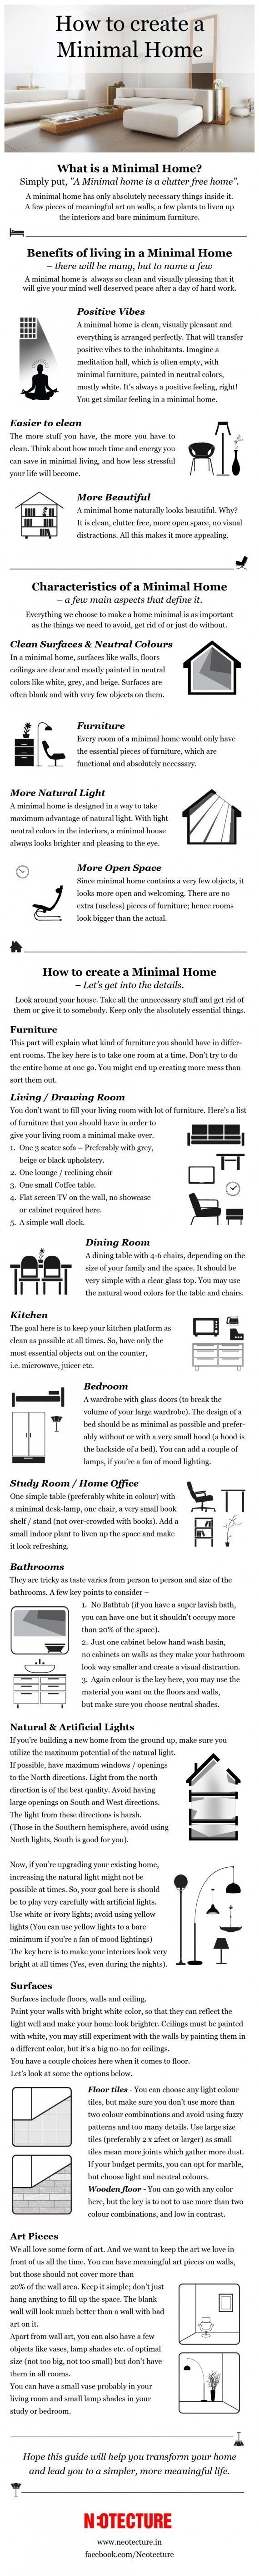 Heres How You Should De-Clutter Your Home